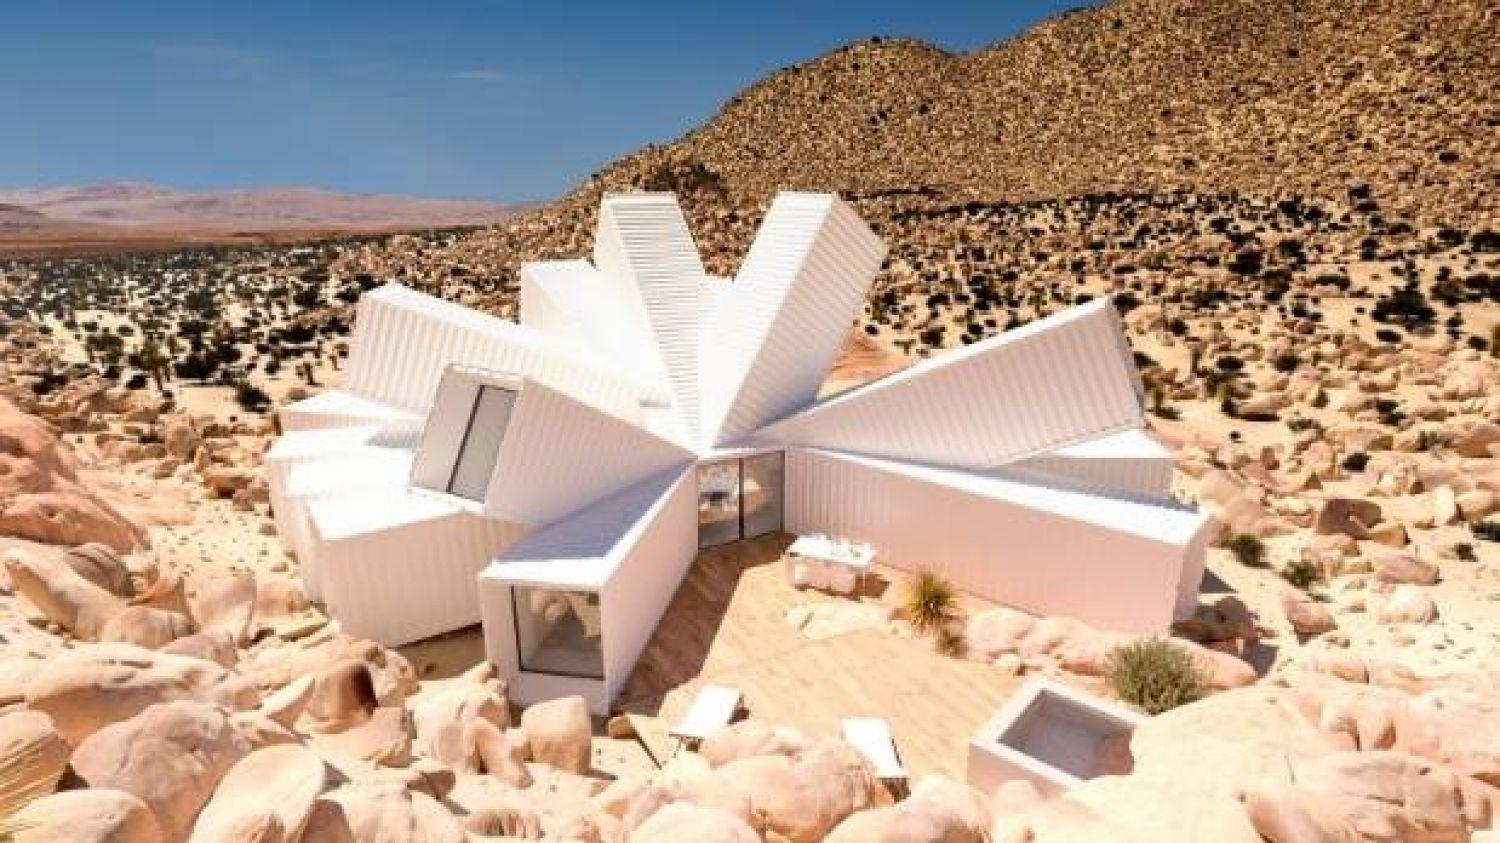 Shipping Containers Desert Plan